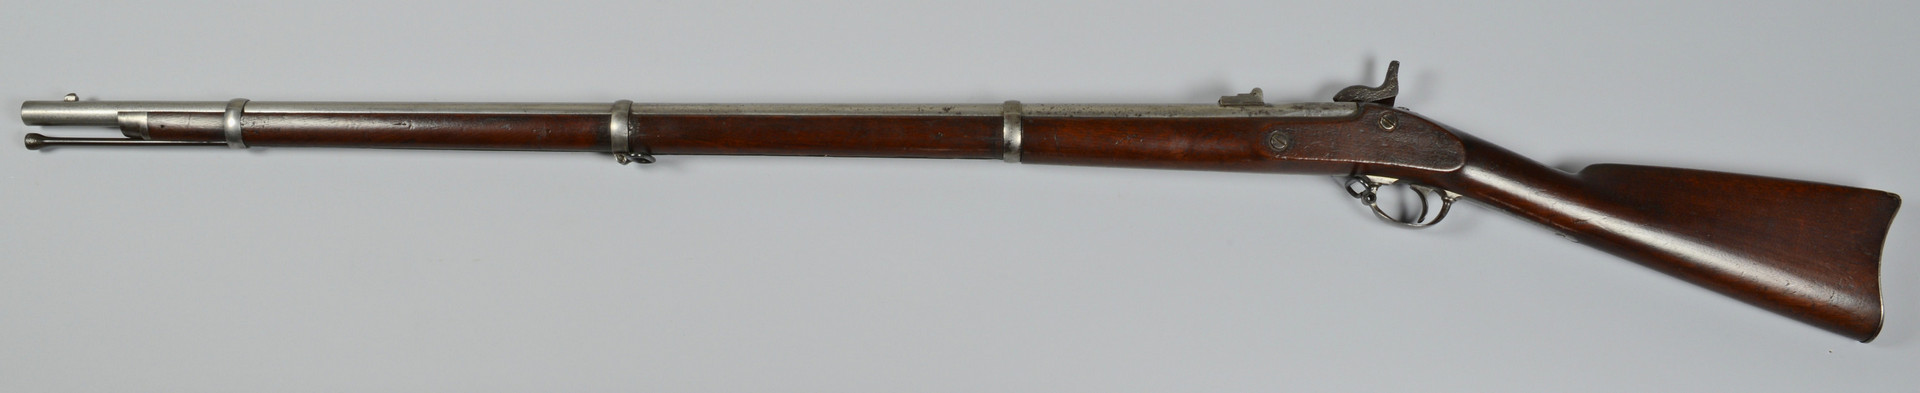 Lot 417: U. S. Rifle Musket Model 1863, Type 2